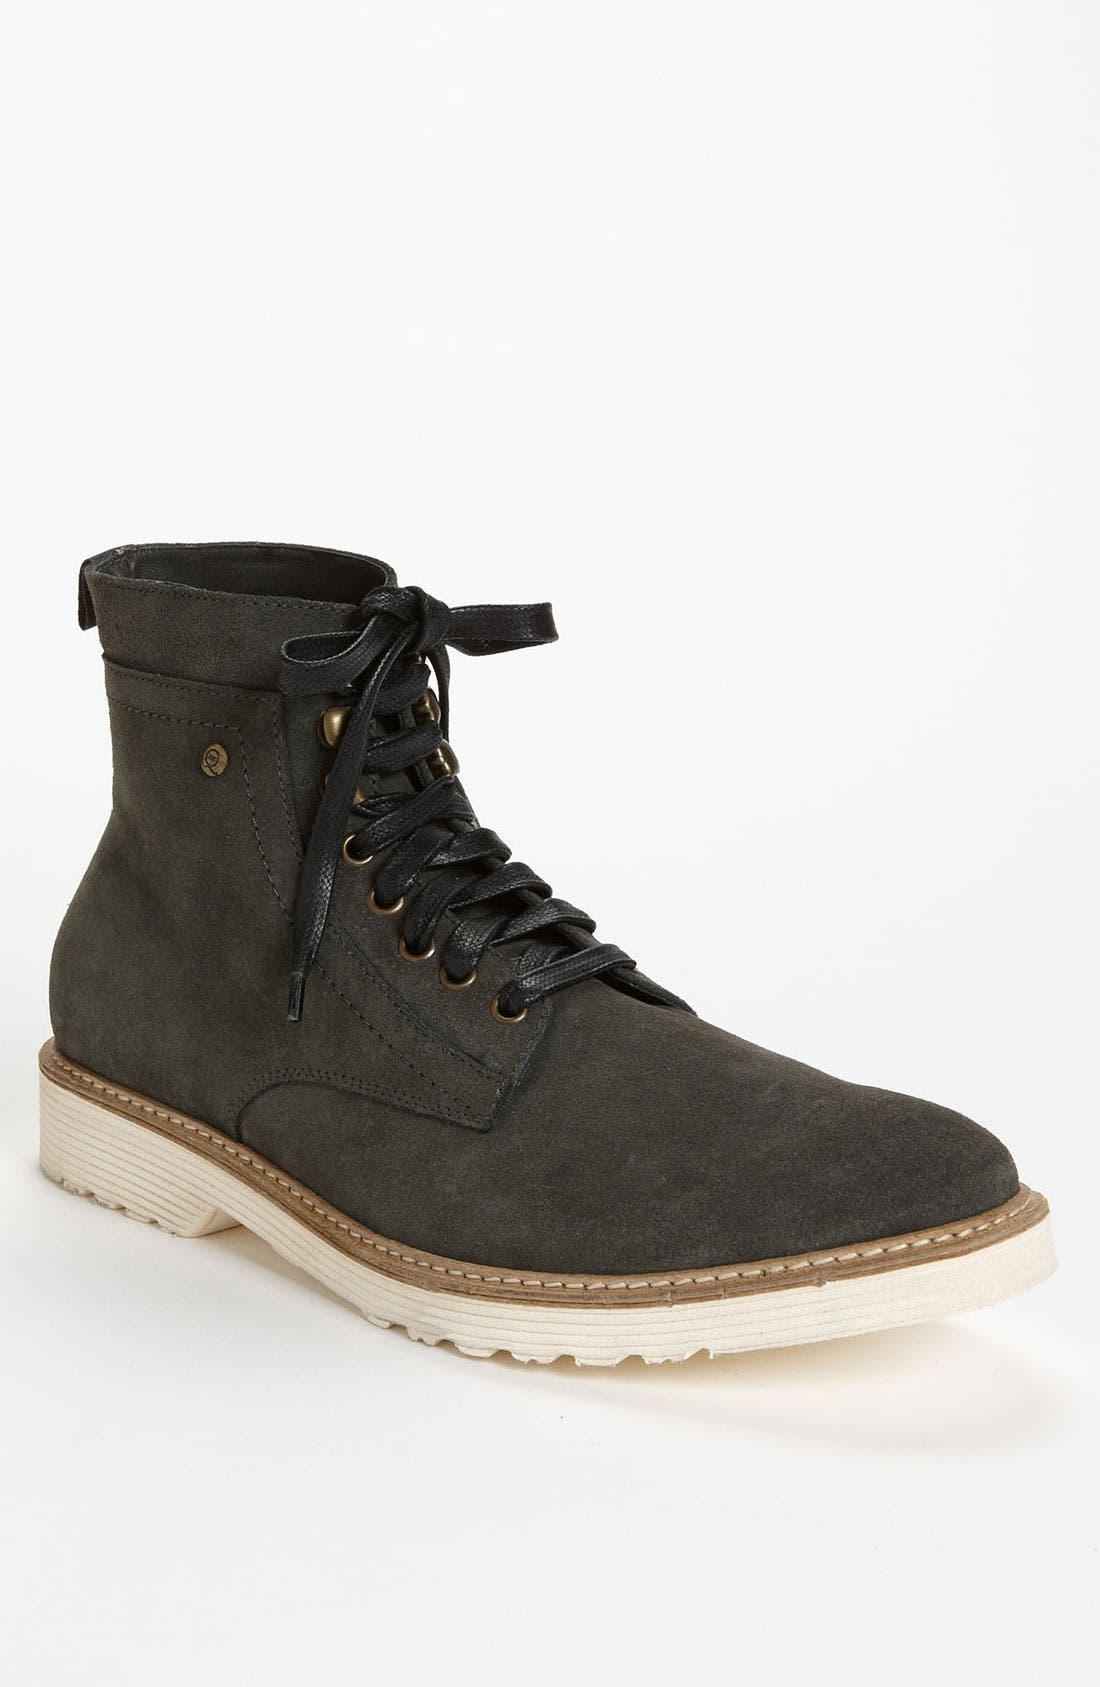 Alternate Image 1 Selected - McQ by Alexander McQueen 'Derby' Plain Toe Boot